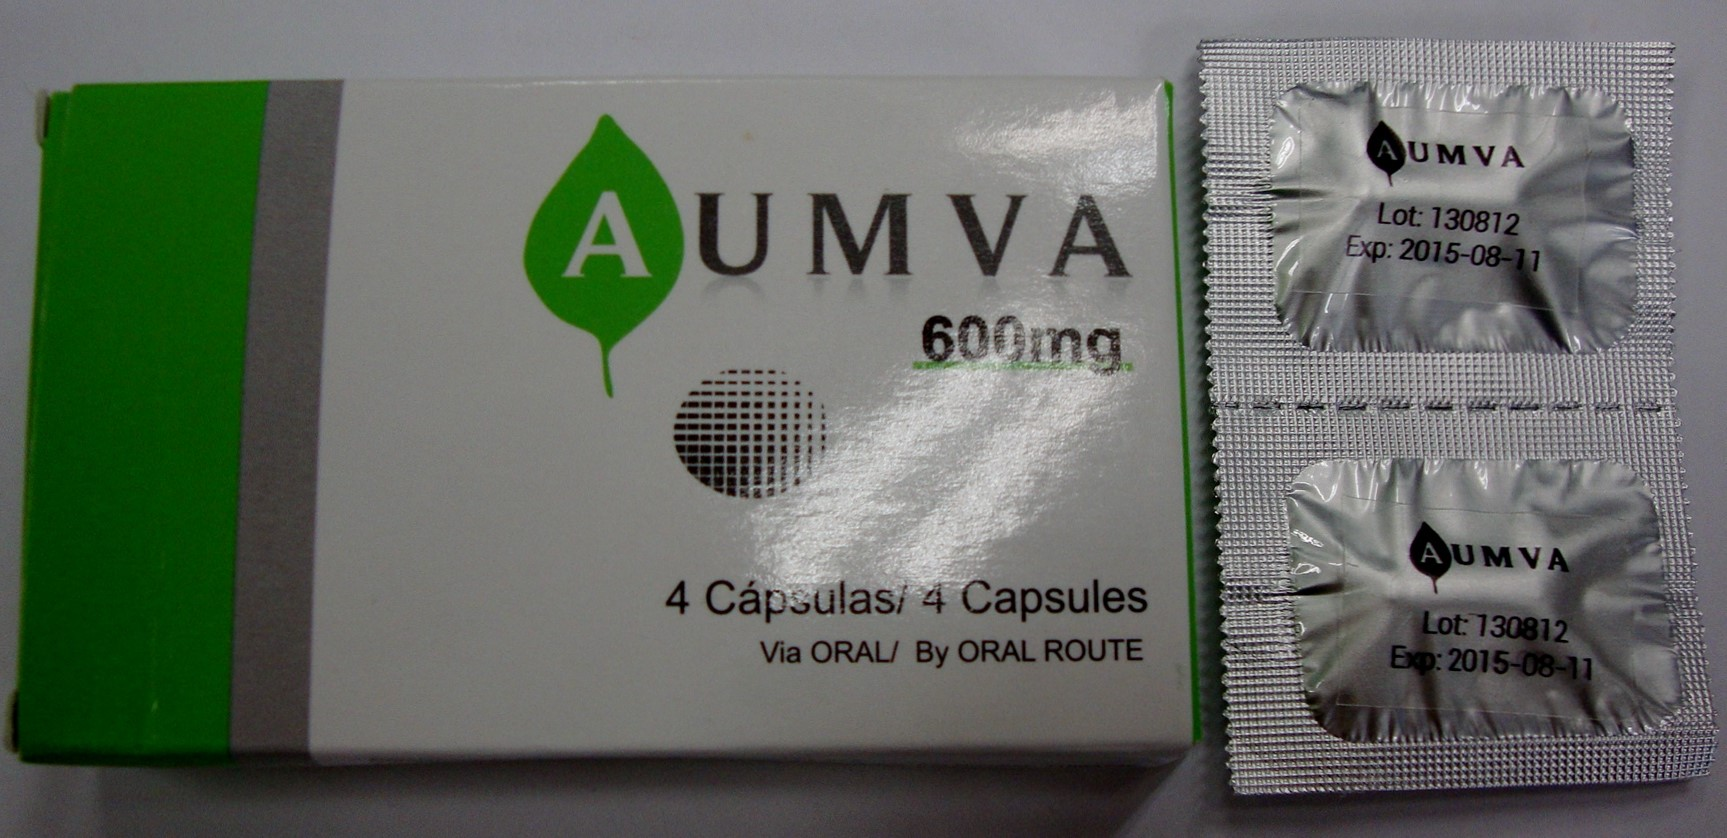 Image of the illigal product: AUMVA capsules